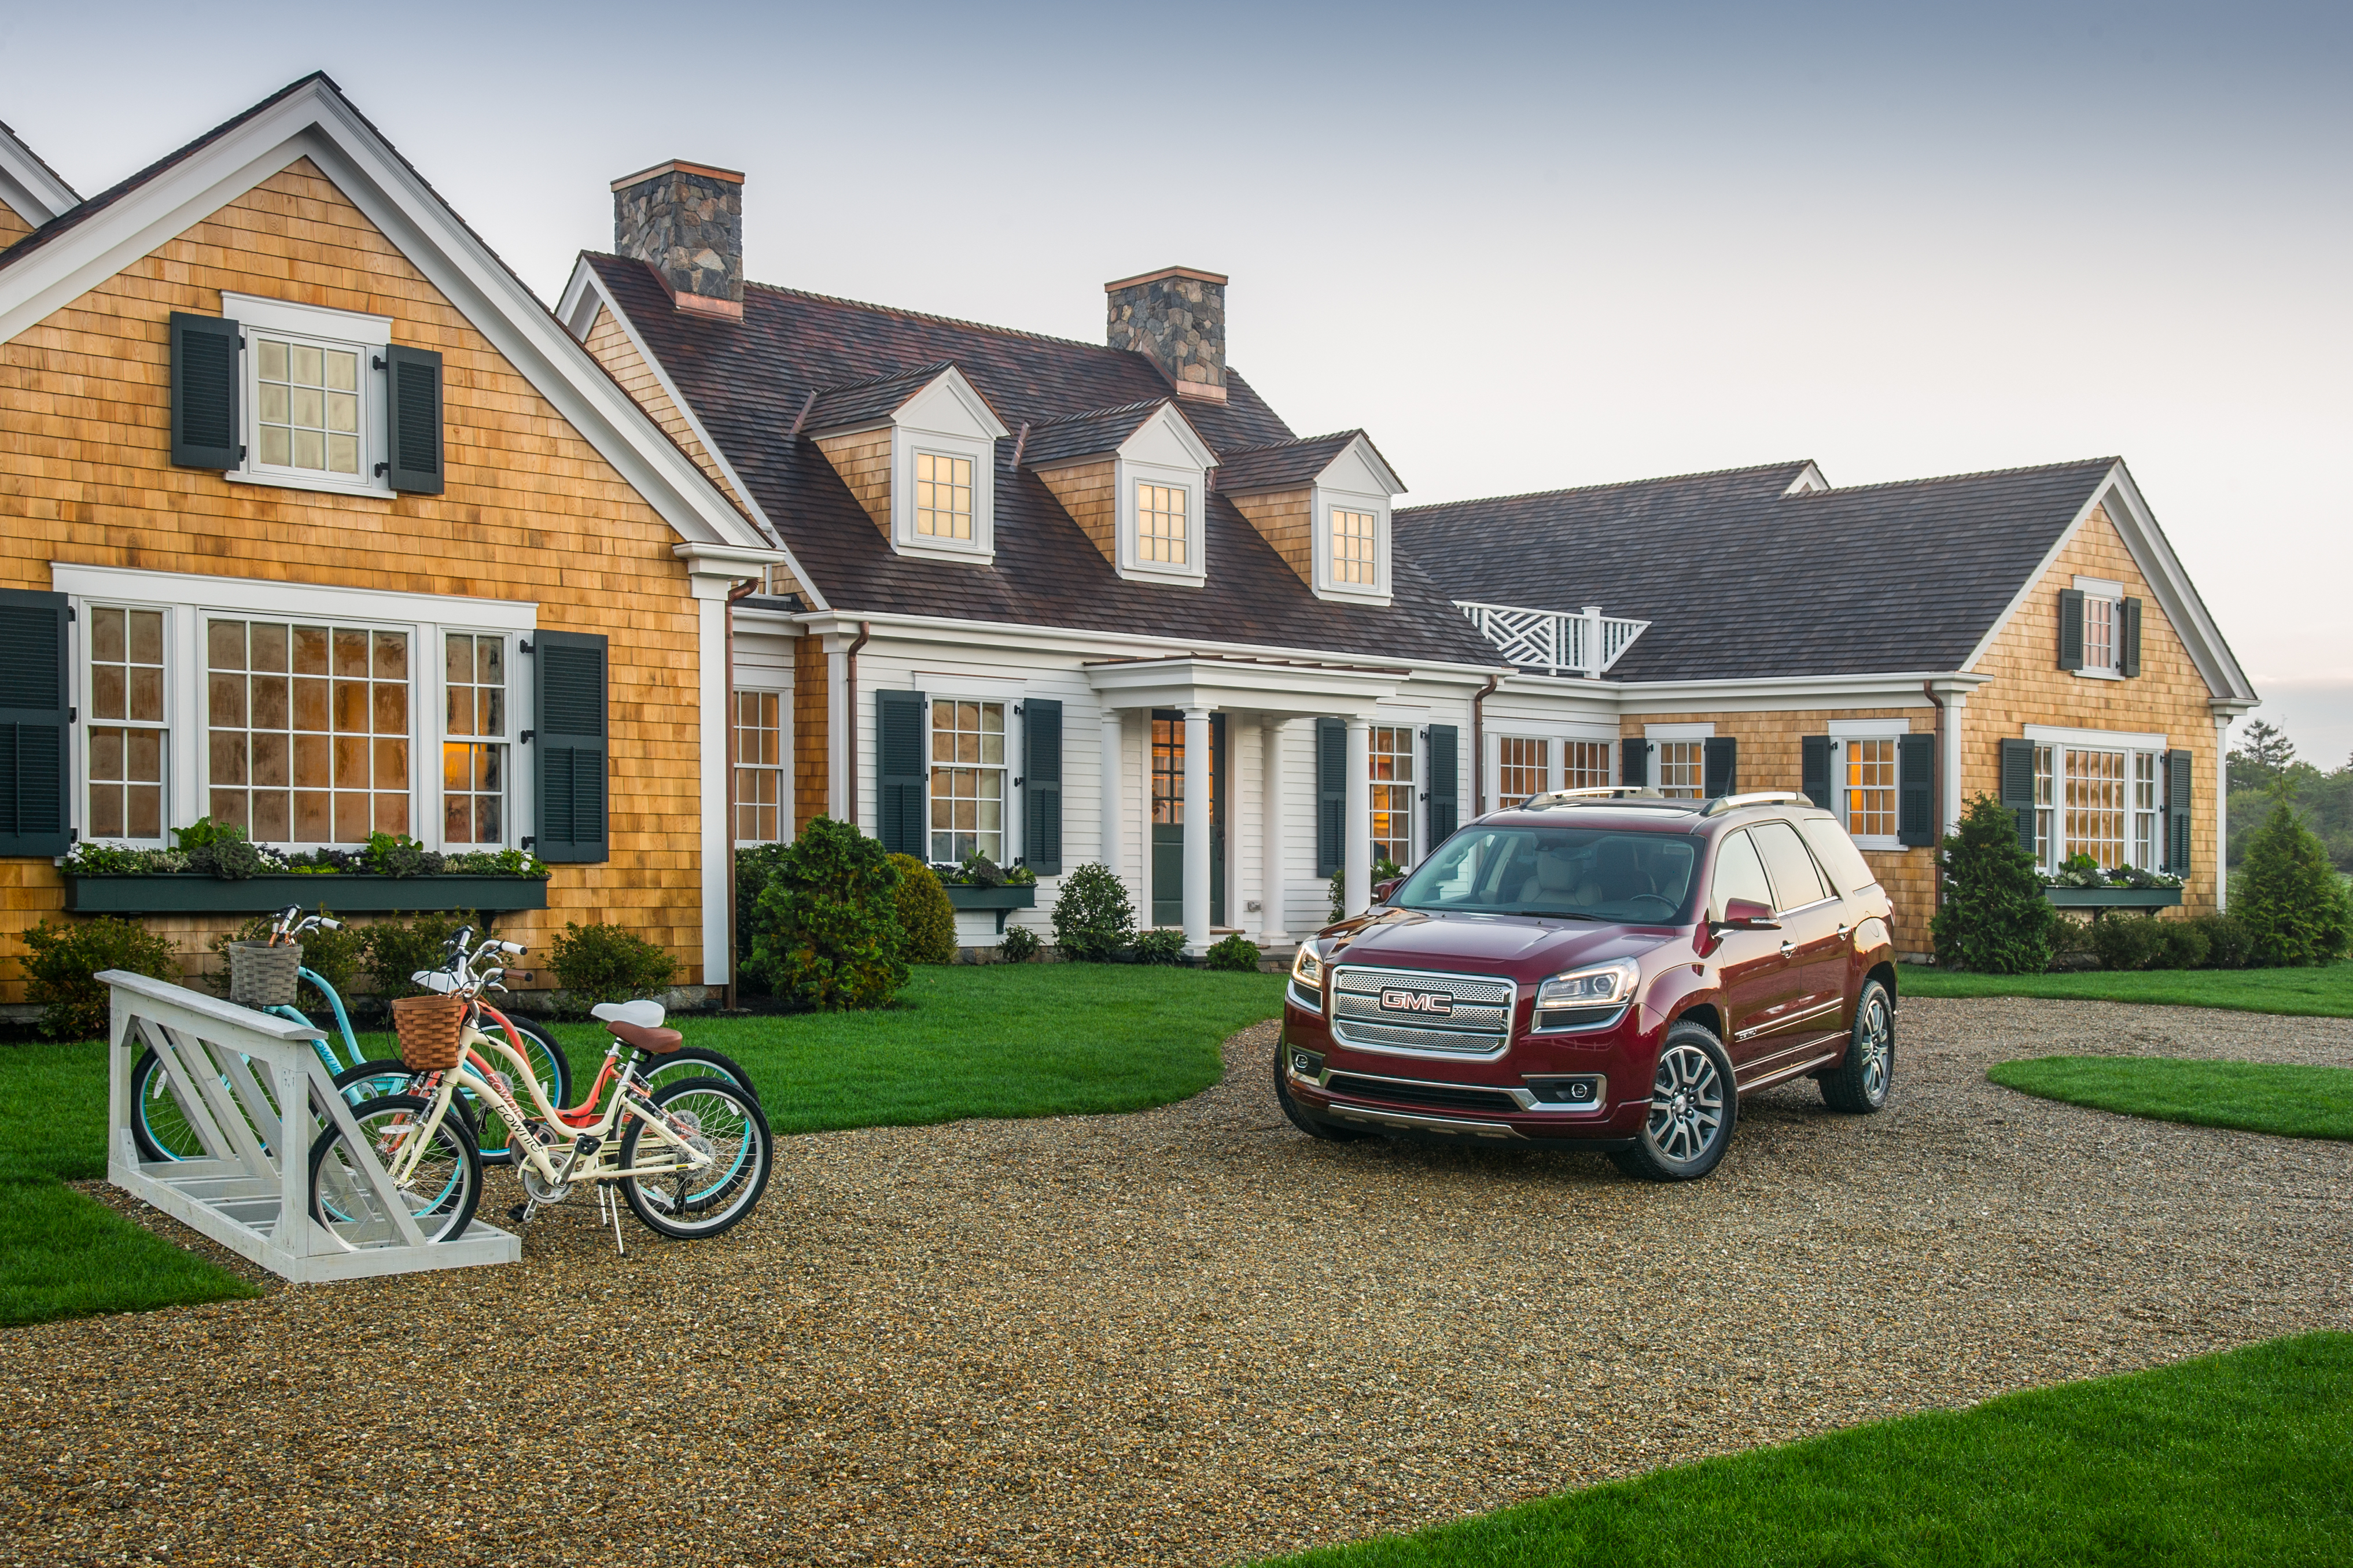 Hgtv Dream Home 2015 Giveaway Now Open For Entries Business Wire